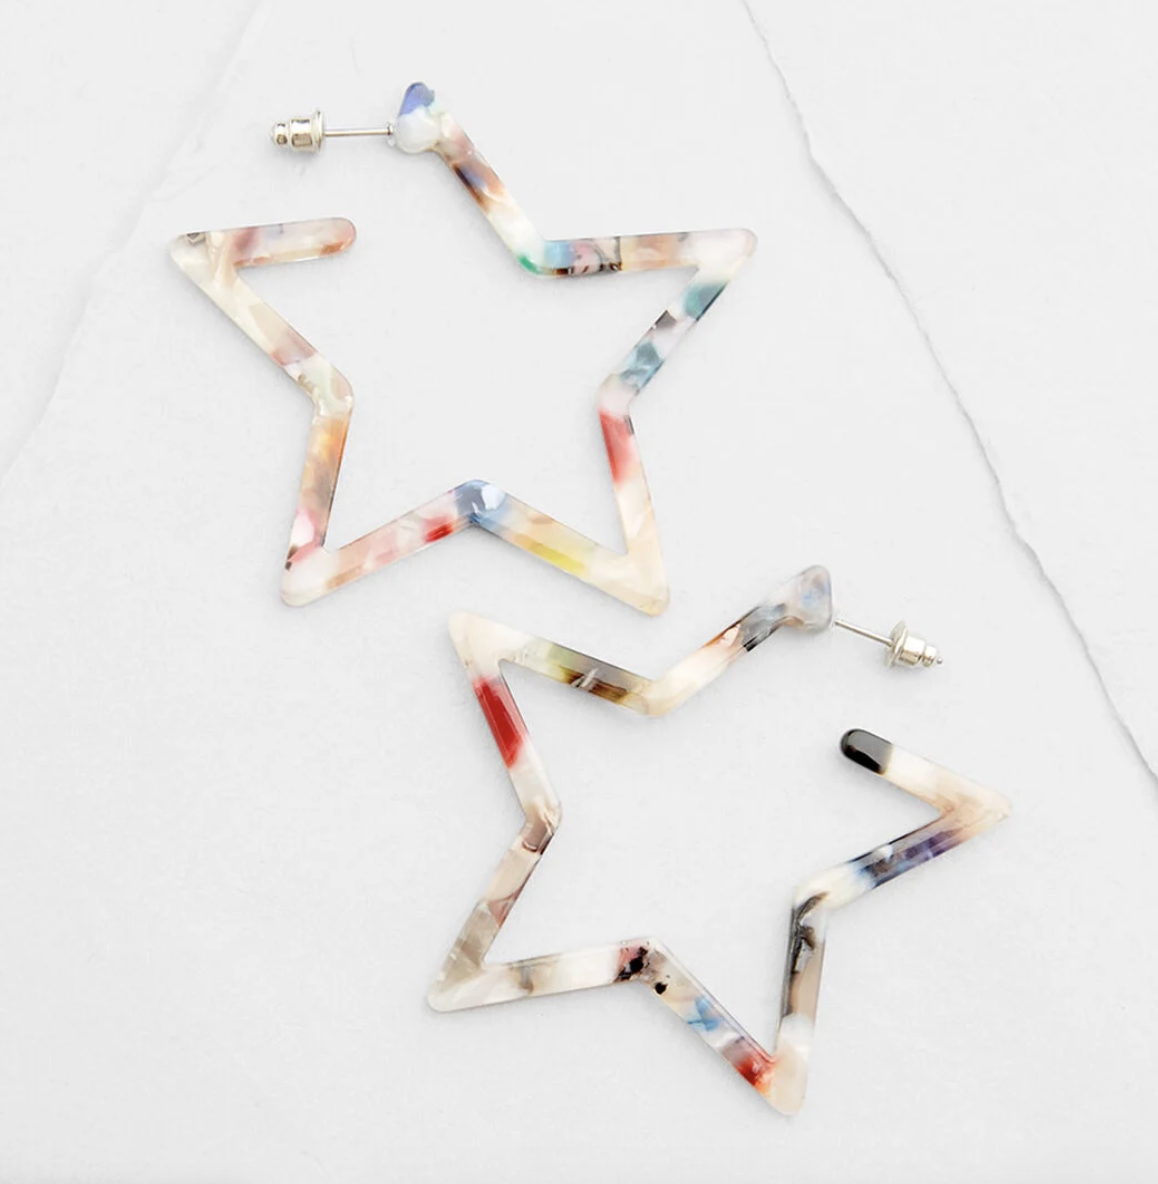 A pair of star-shaped marbled earrings with rainbow flecks